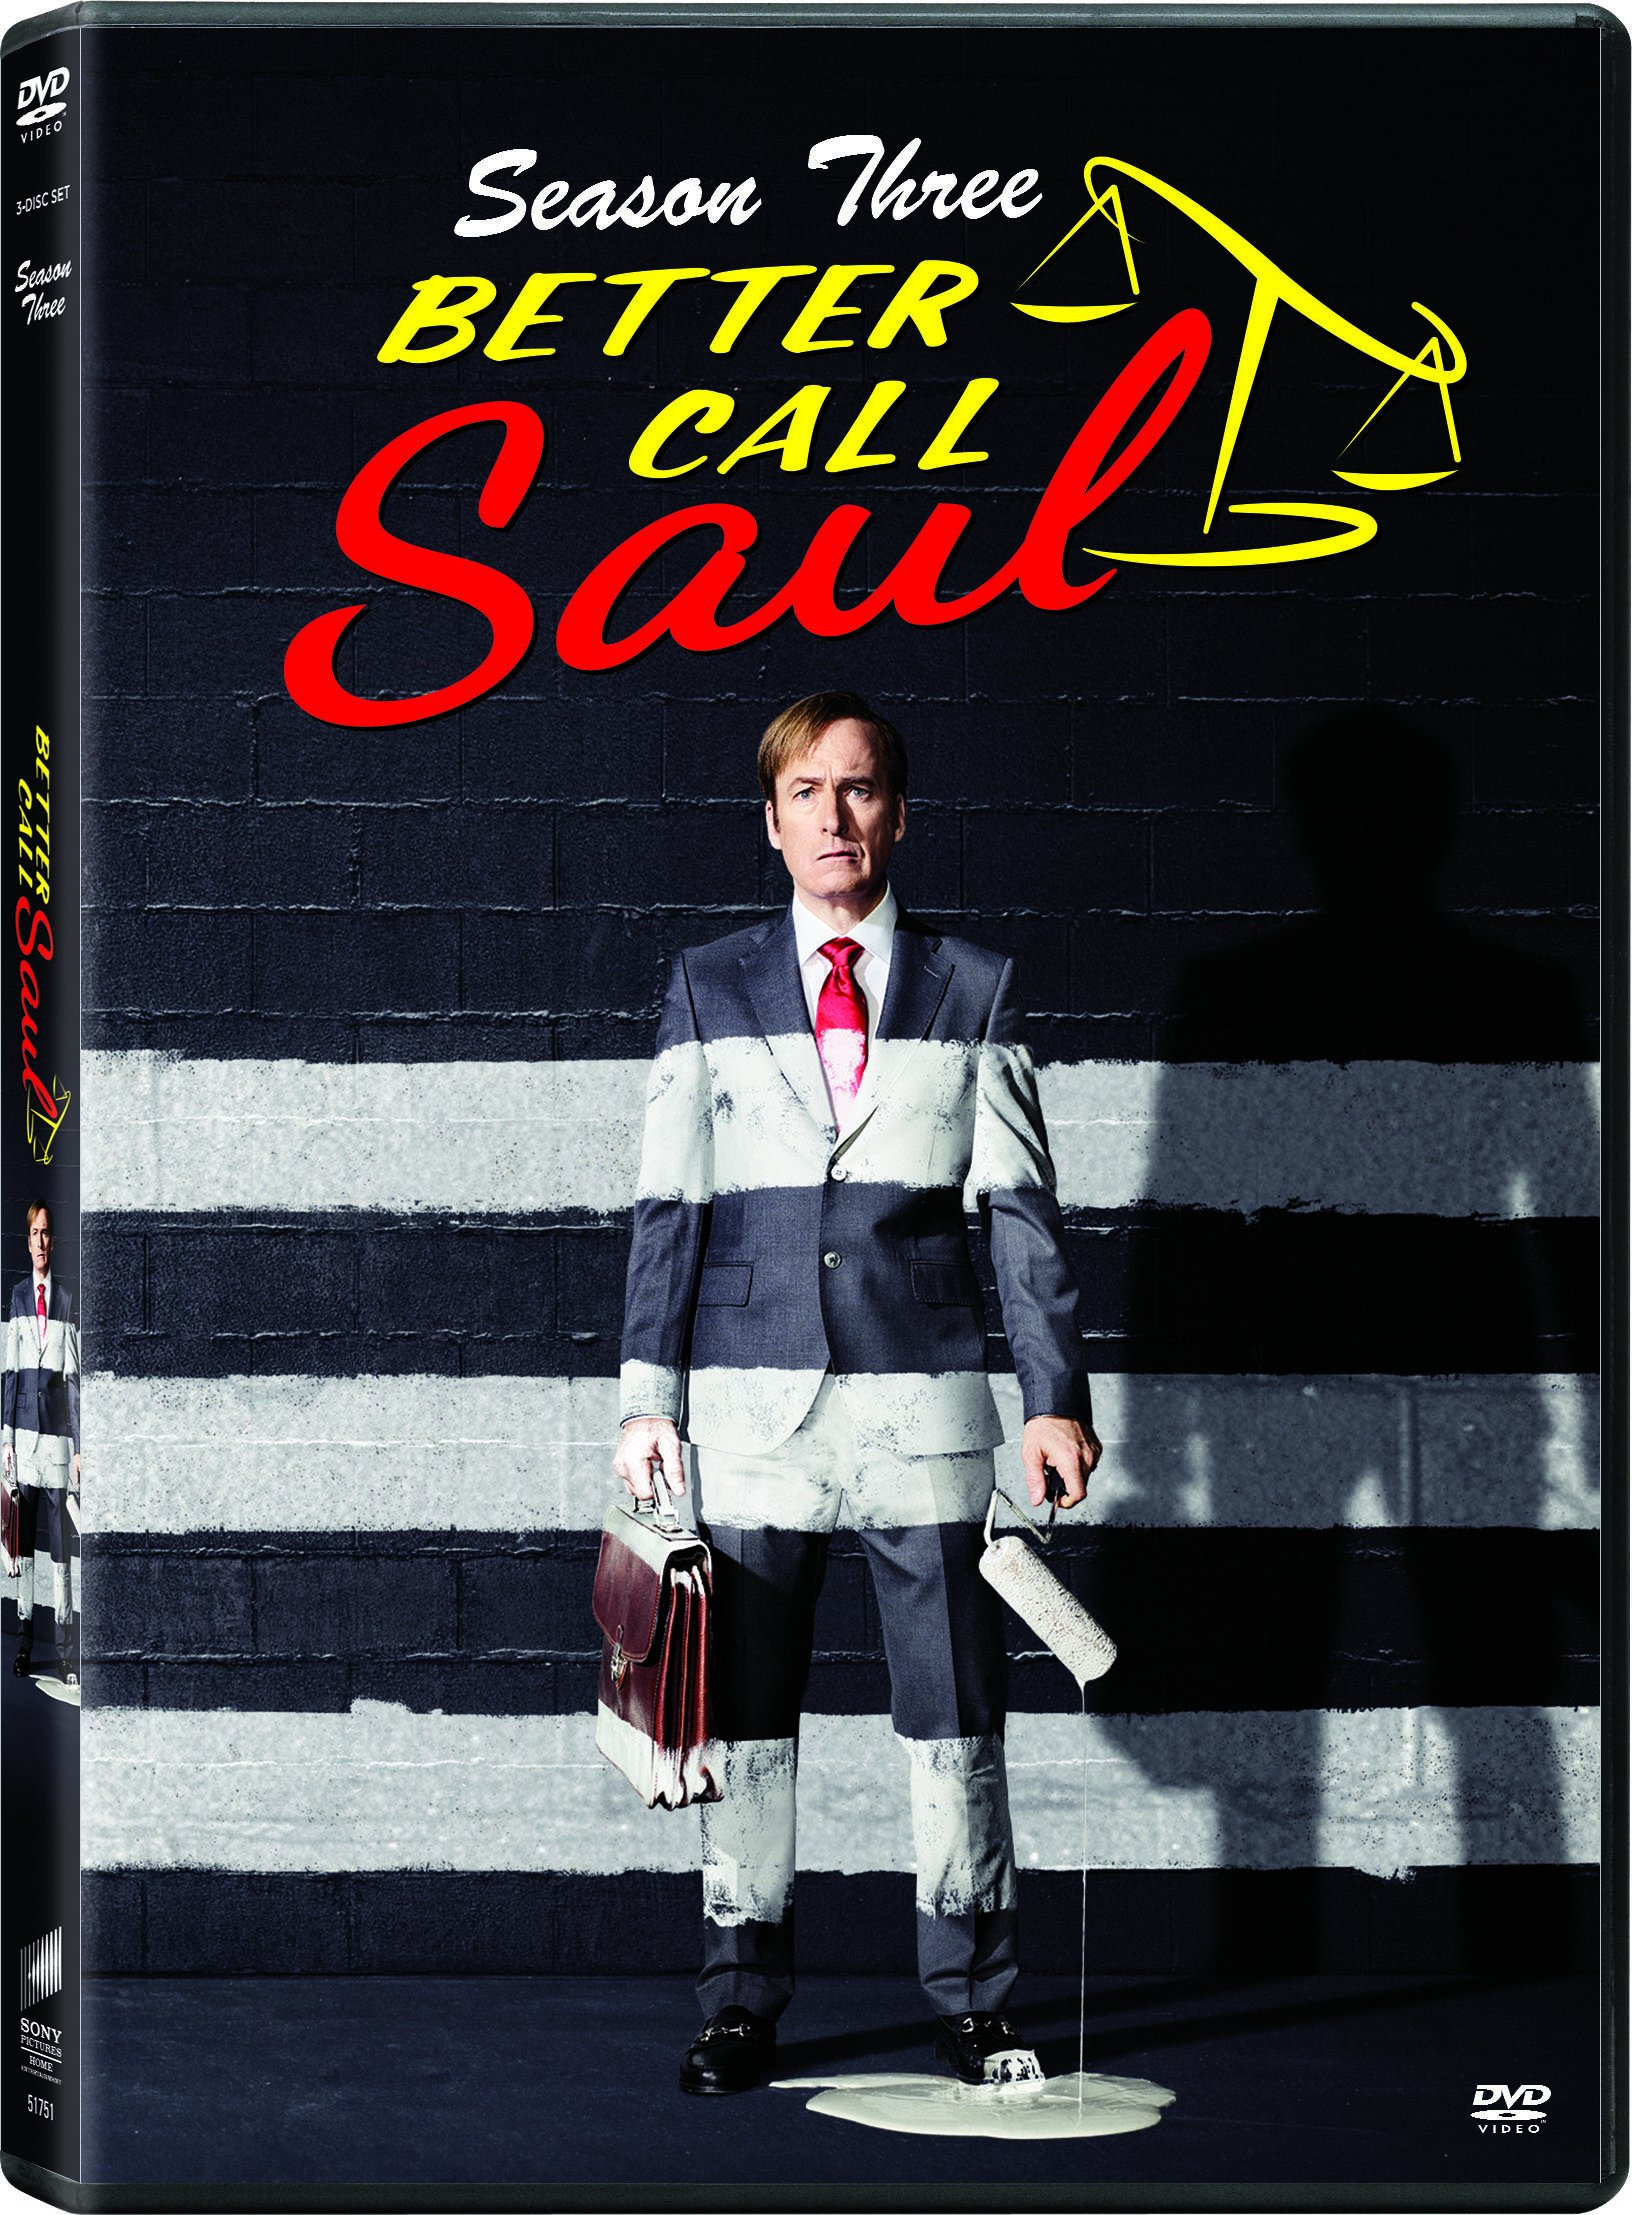 Better Call Saul - Season 03 by Sony Pictures